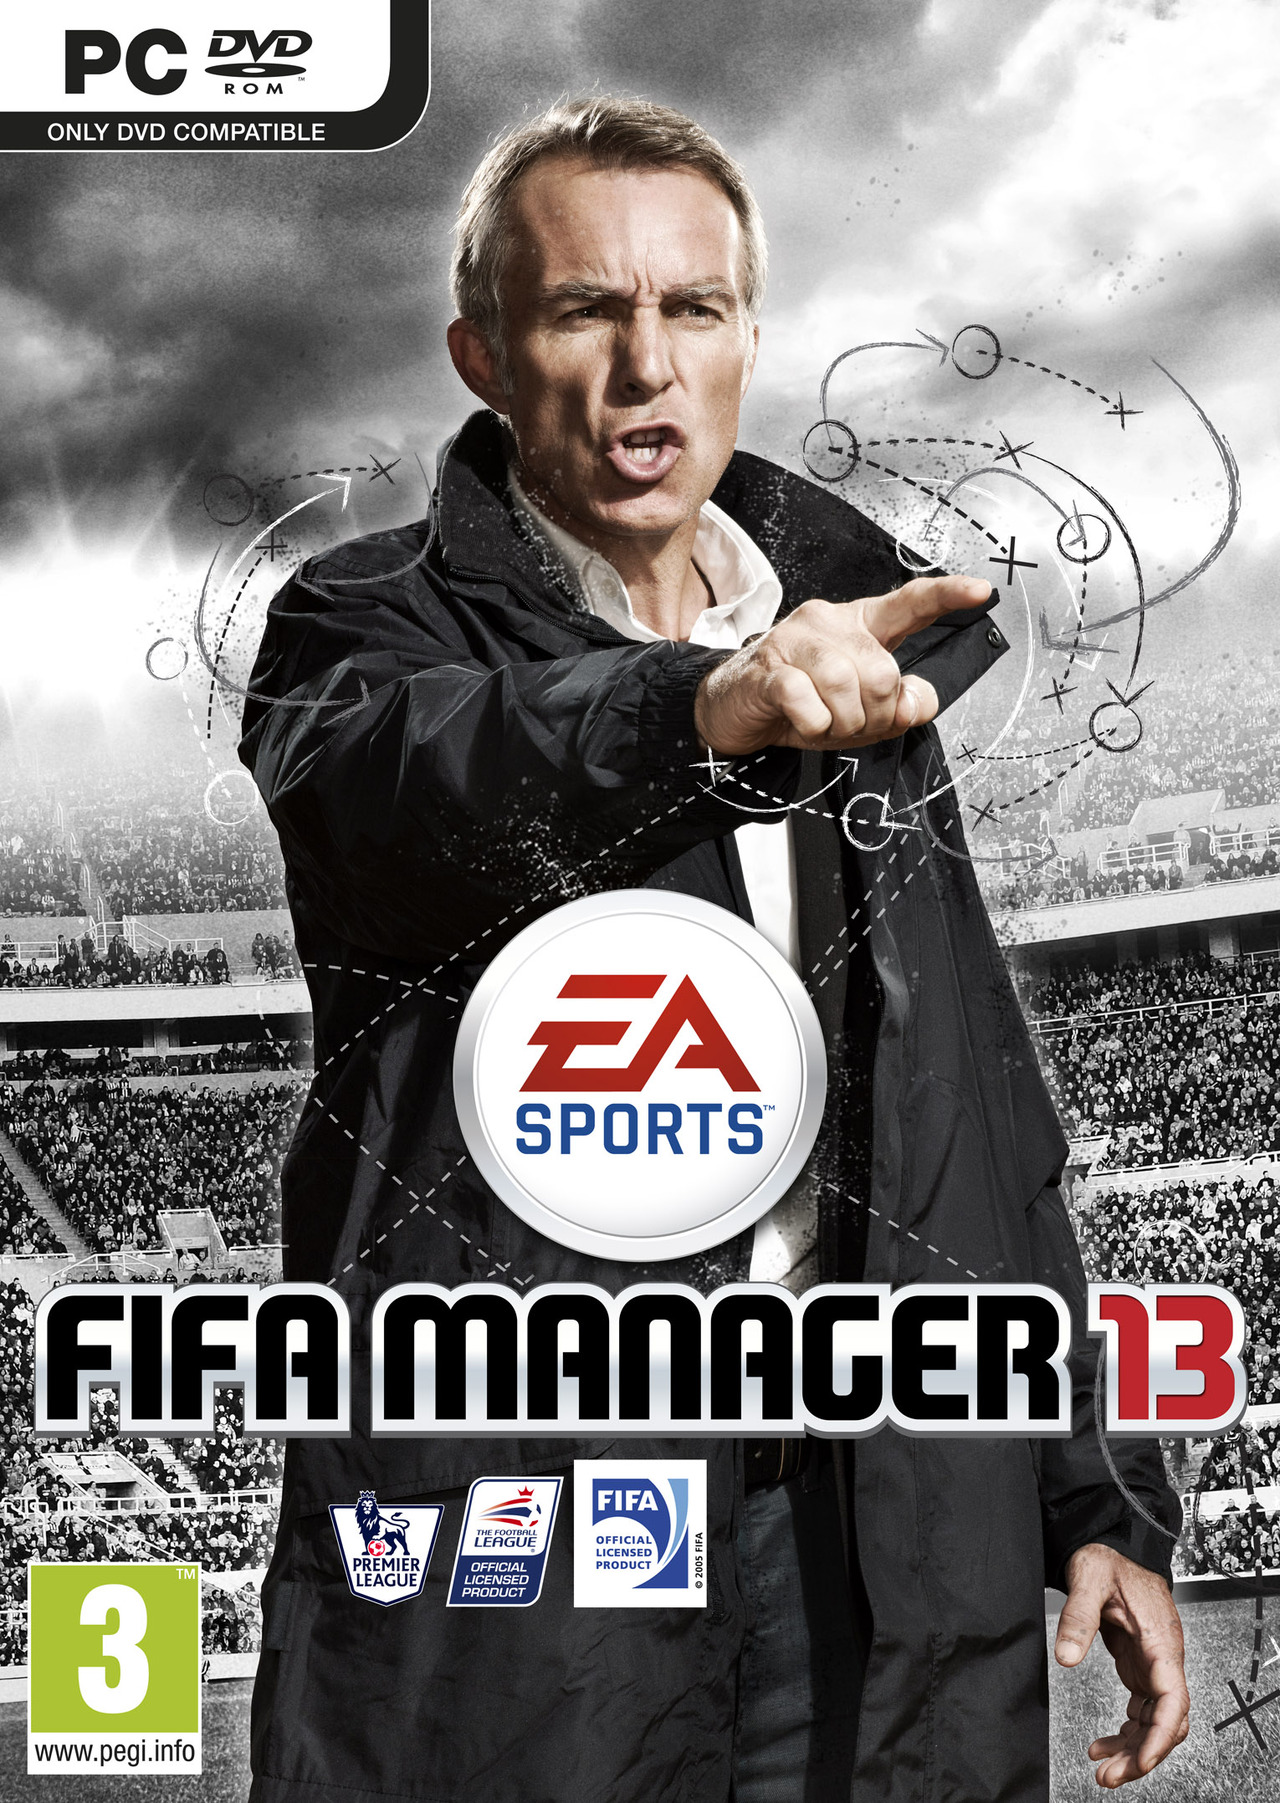 FIFAManager13 PC Jaquette 001